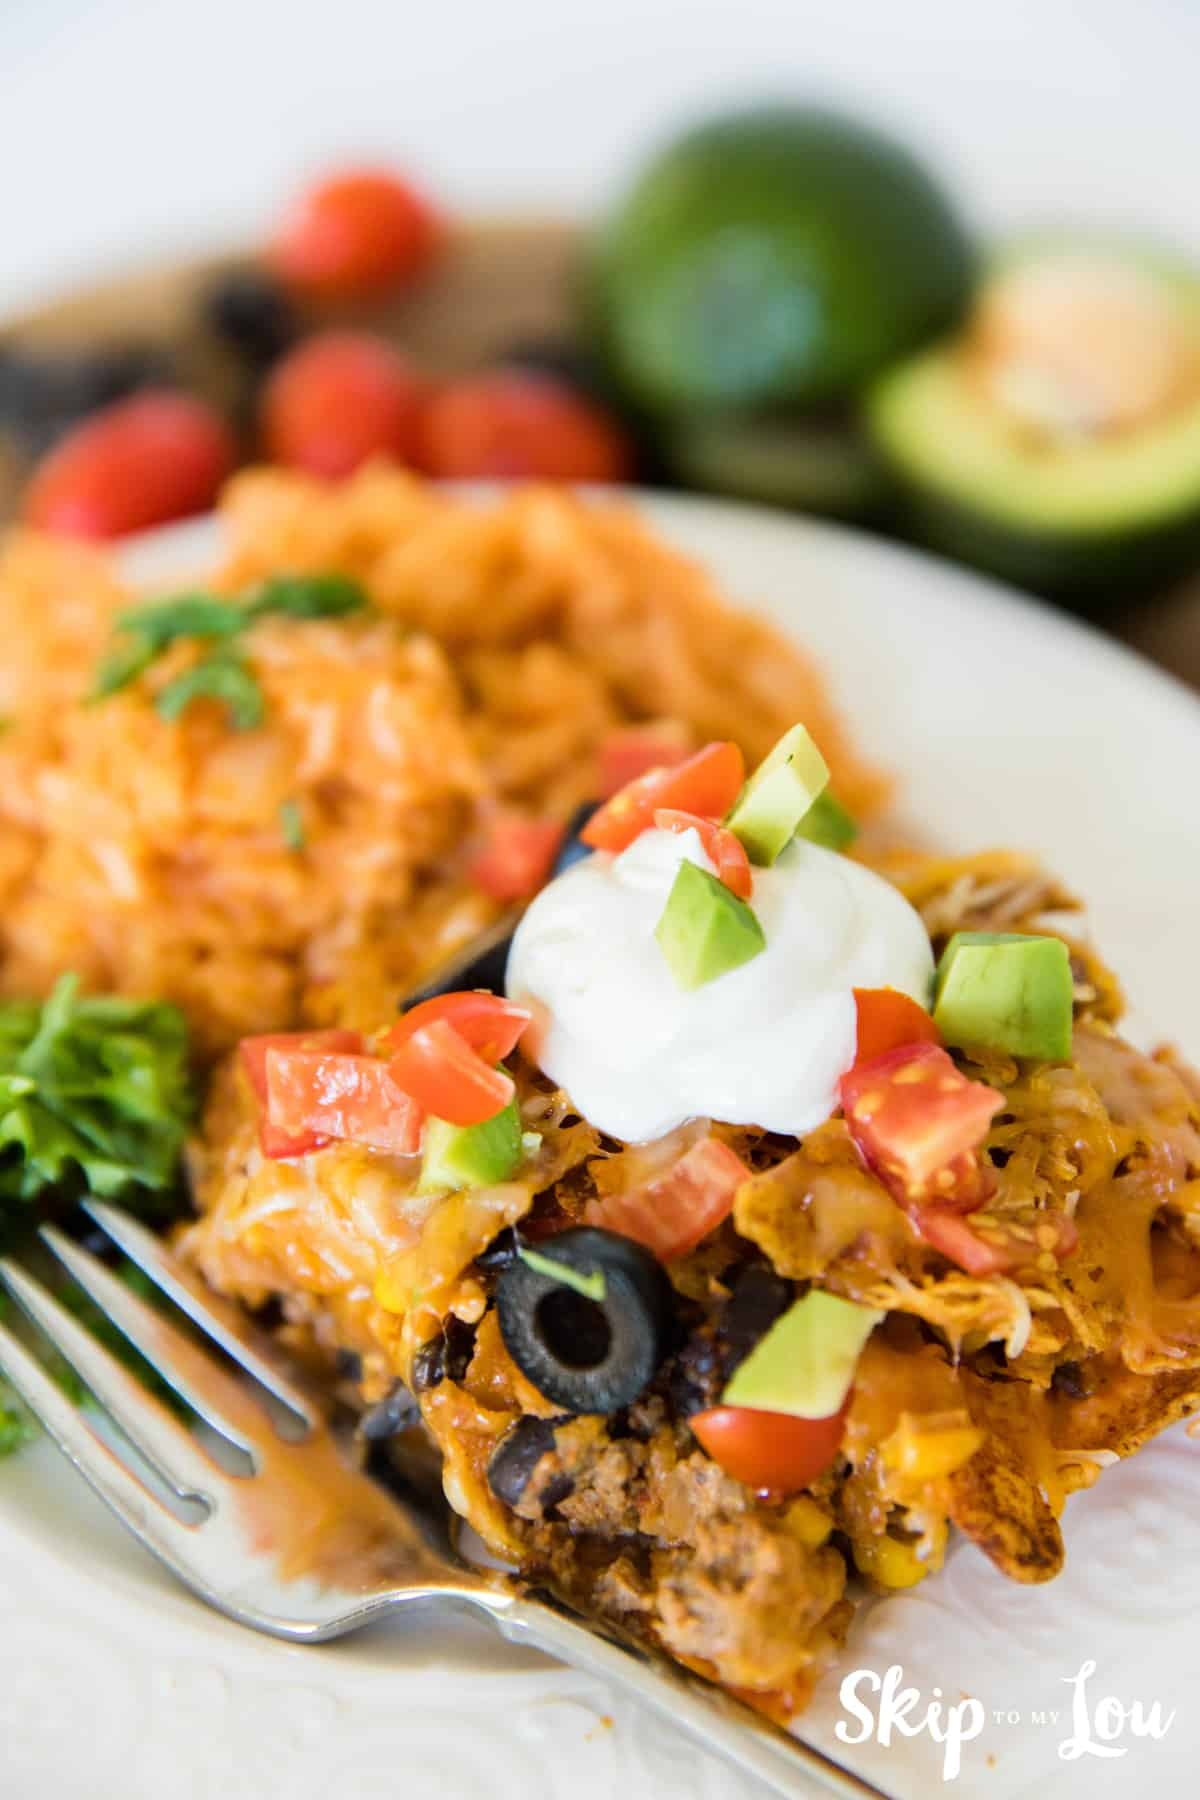 Doritos casserole topped with sour cream and served with mexican rice on the side